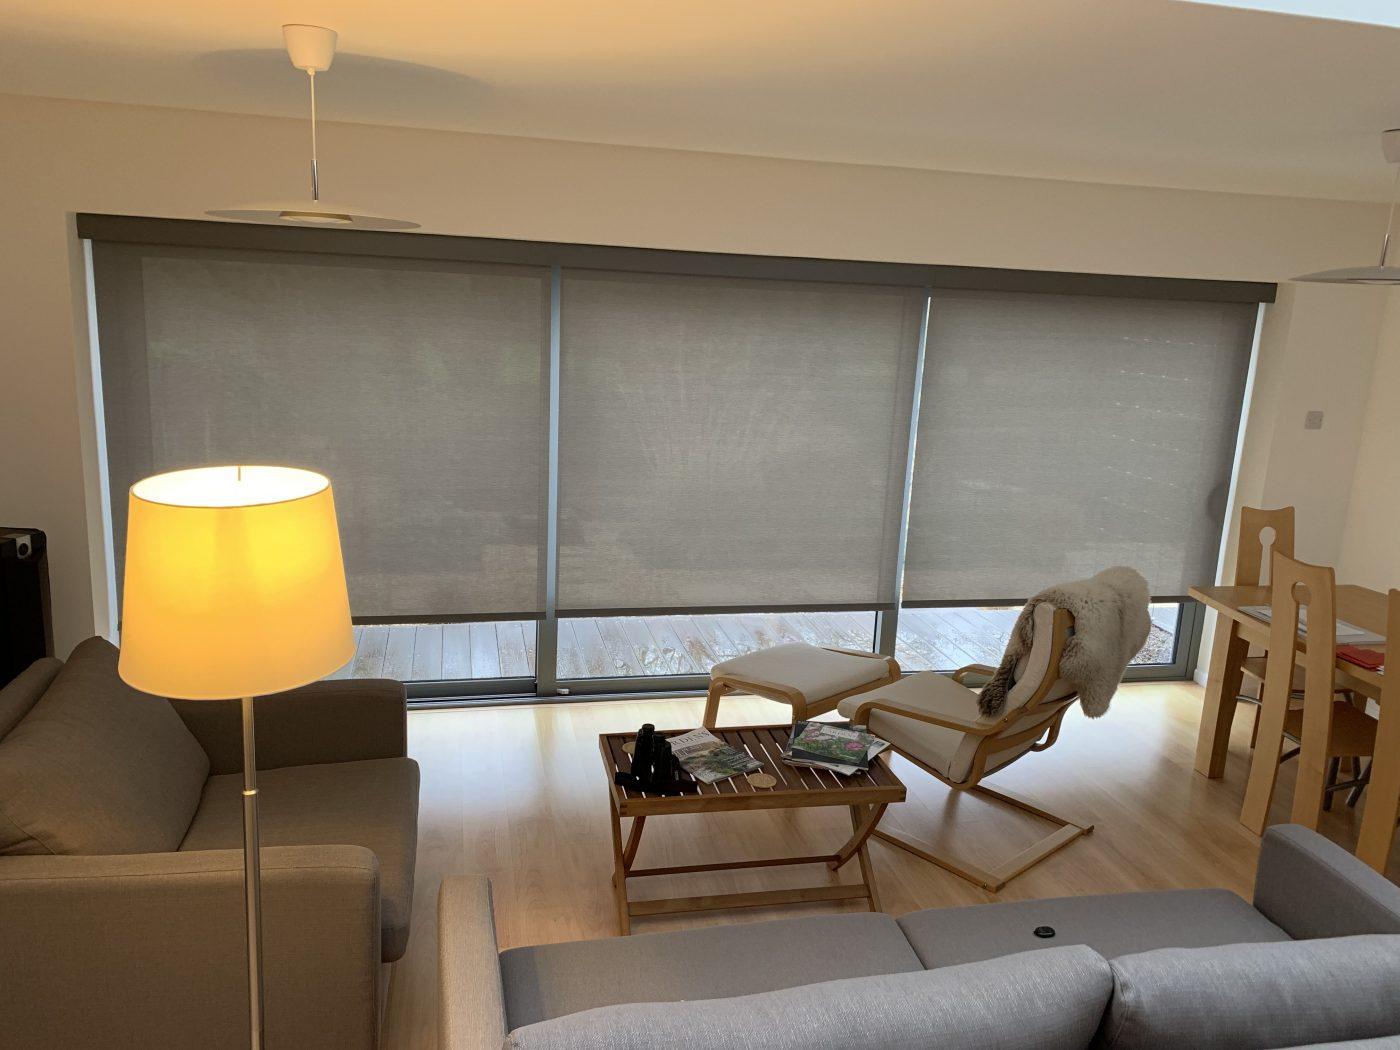 Alexa Motorised Electric Blinds The Electric Blind Company